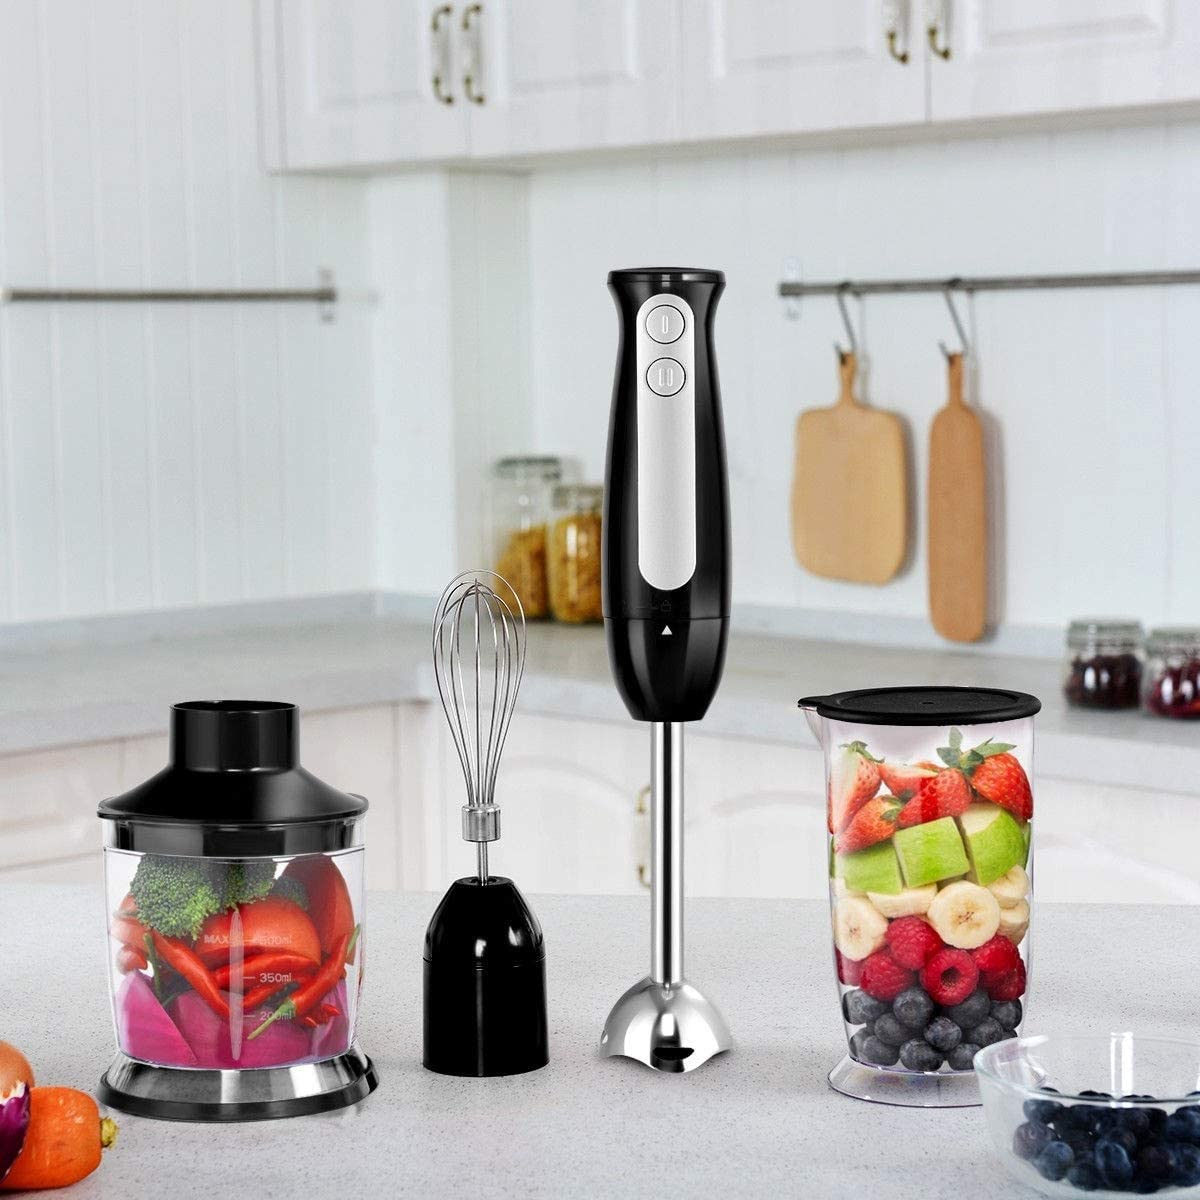 Electric Immersion Hand Blender Set 2 Speed 600 W 4 in 1